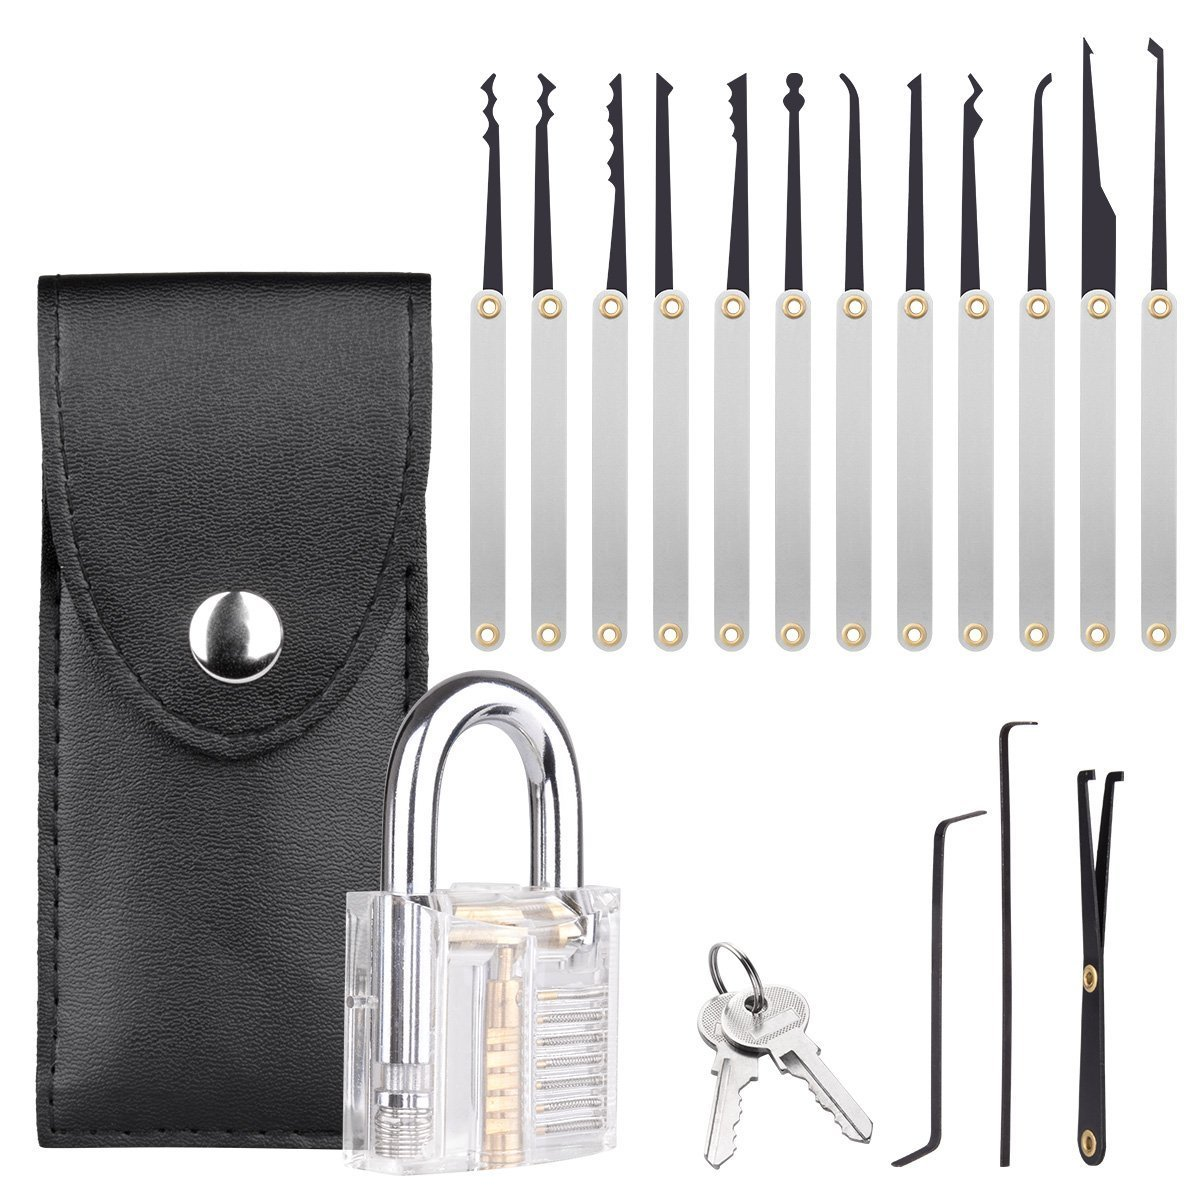 Professional practice Tools 15 Piece Multi-Tool Set and Training Kit for Beginners and Professionals by Blinyang (Image #1)